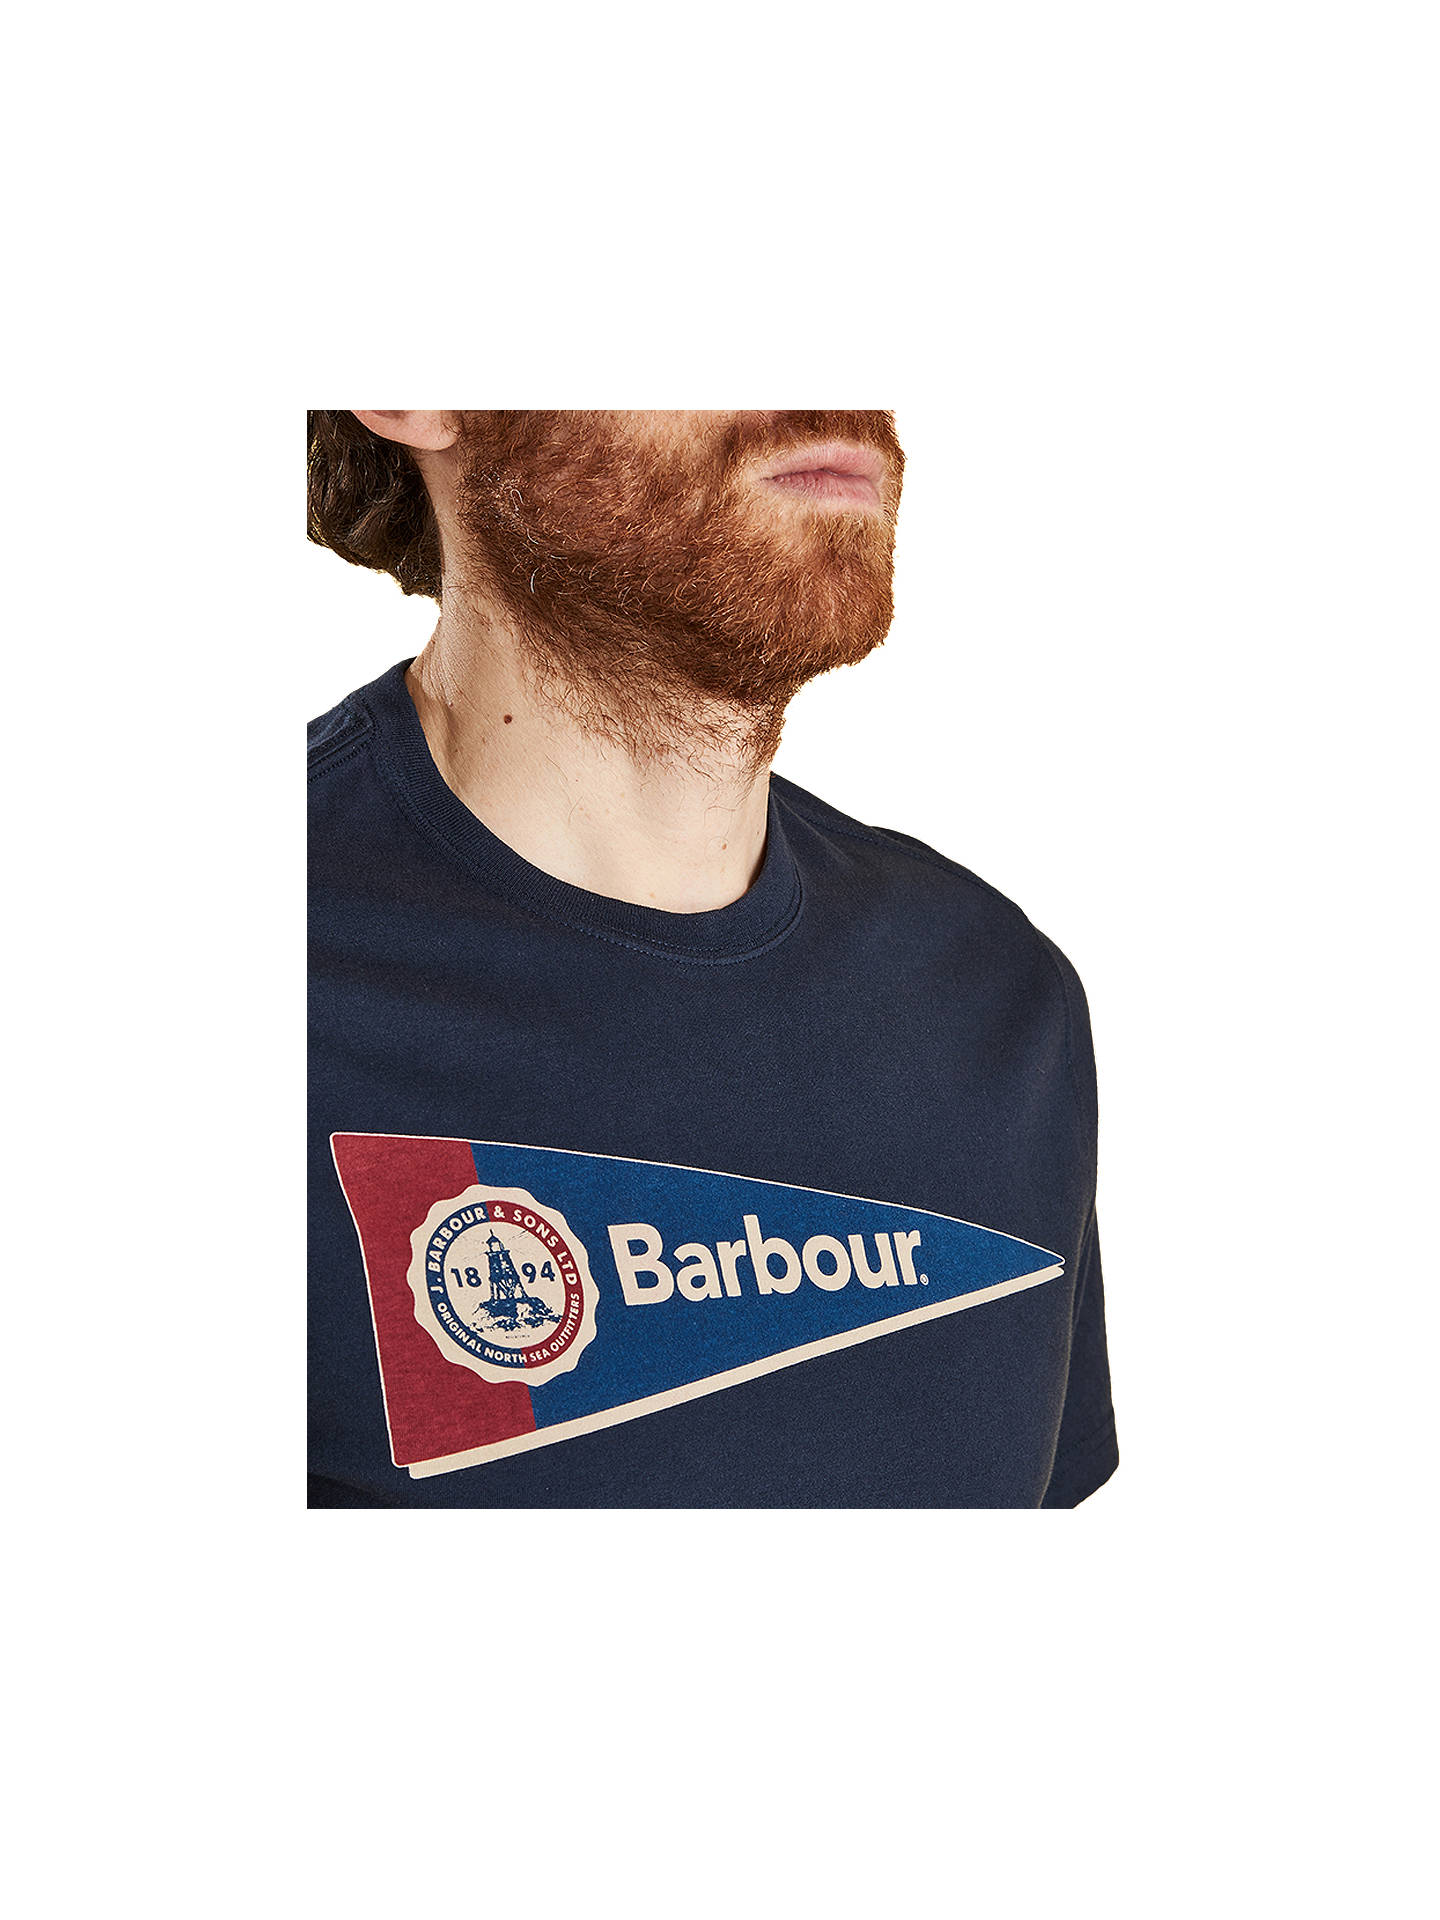 Buy Barbour Pennant Short Sleeve Logo T-Shirt, Navy, M Online at johnlewis.com